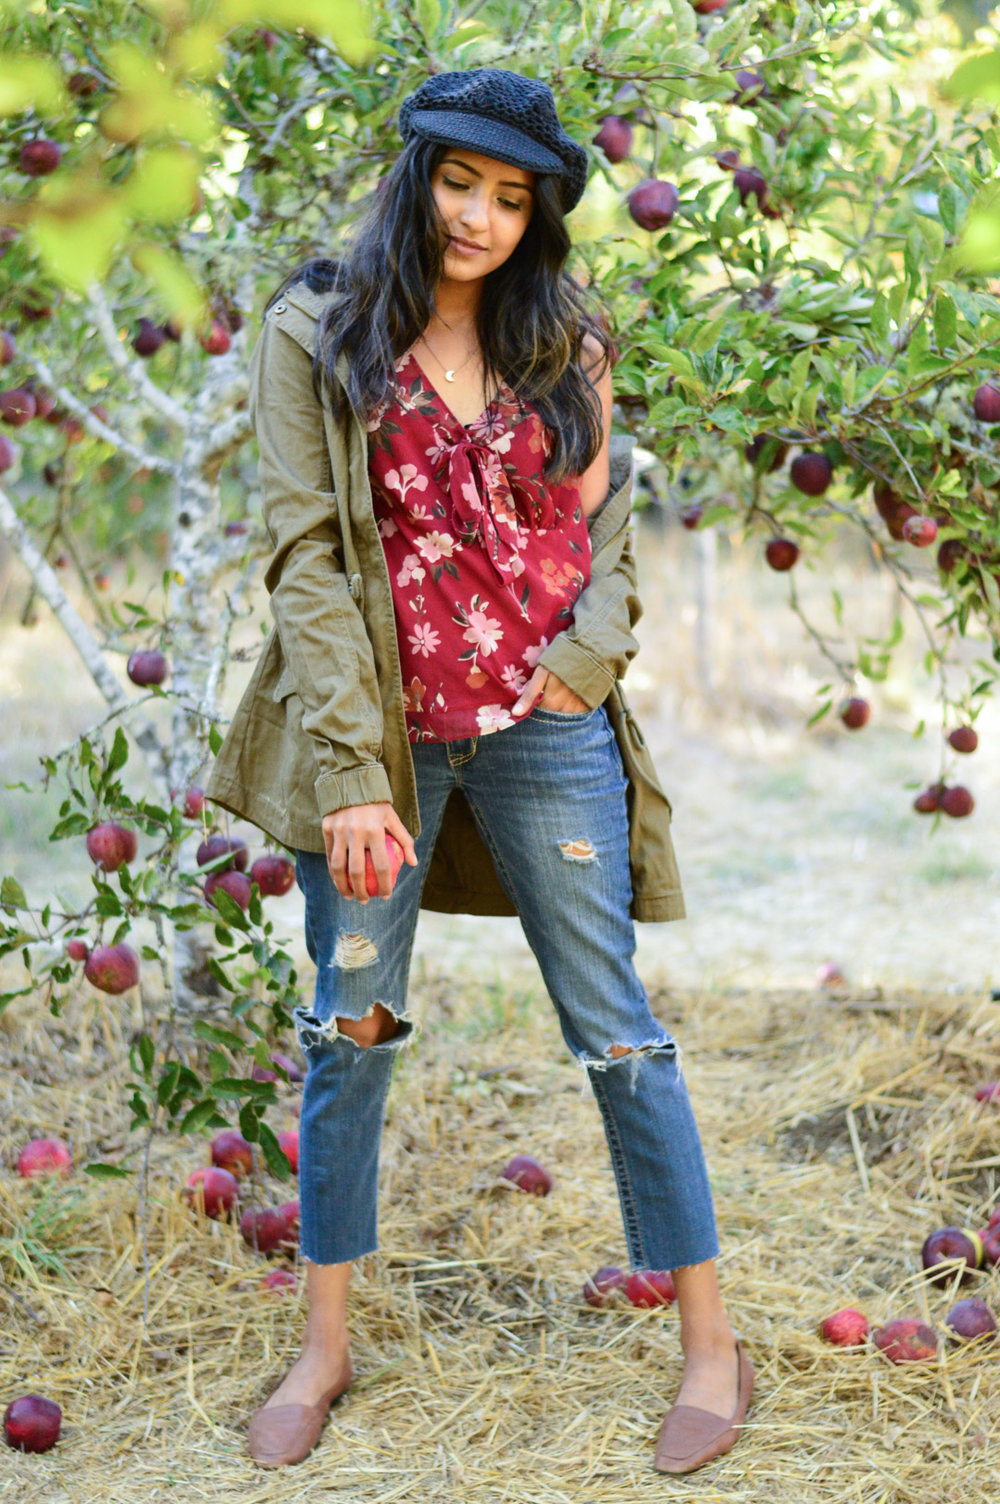 apple-picking-fall-florals-utility-jacket-california-fashion 3